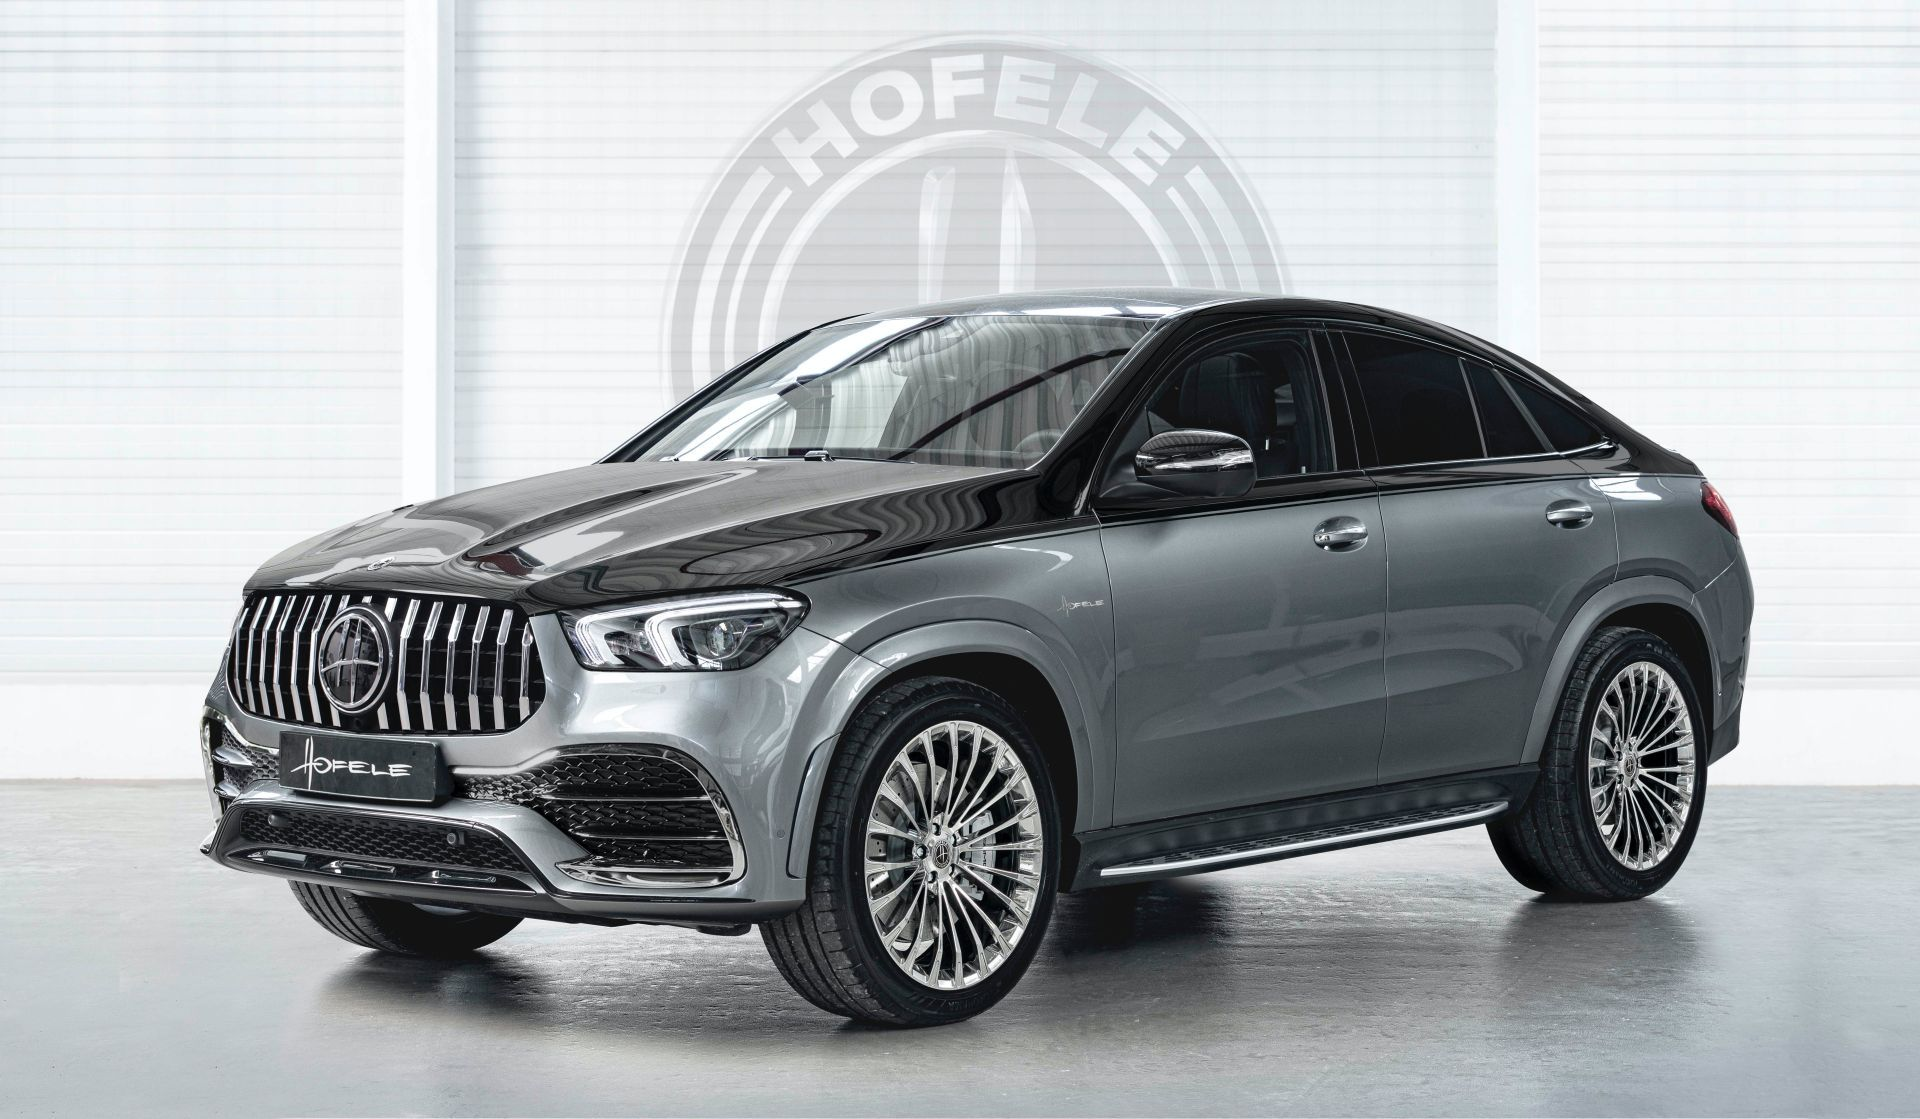 Hofele S Mercedes Gle Coupe Looks Like A Collab Between Maybach And Amg Mercedes Suv Mercedes Benz Gle Coupe Mercedes Benz Gle